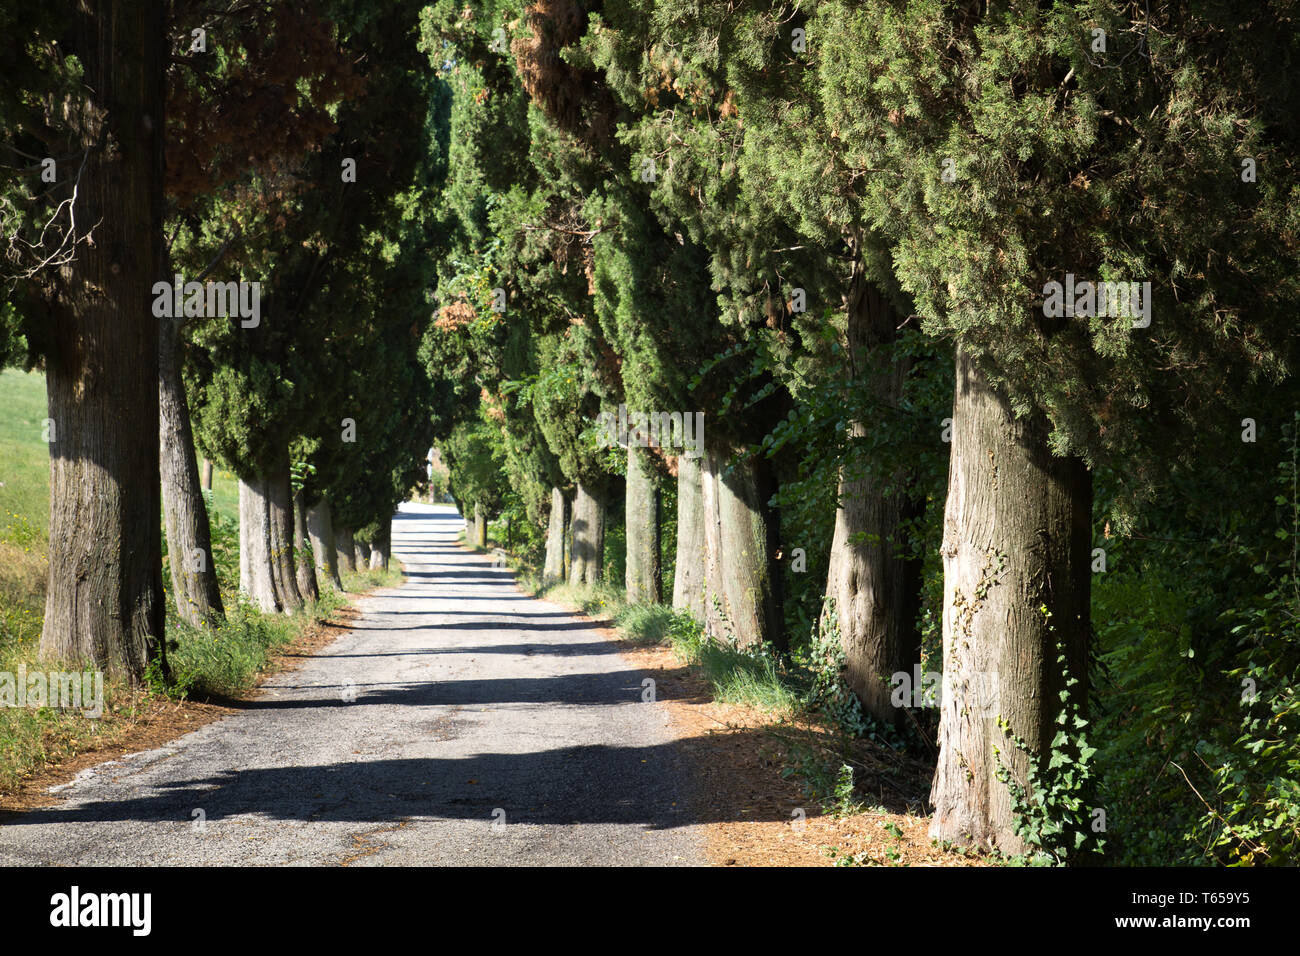 Beautiful Landscape, Marche or the Marches, a Region in Italy - Stock Image